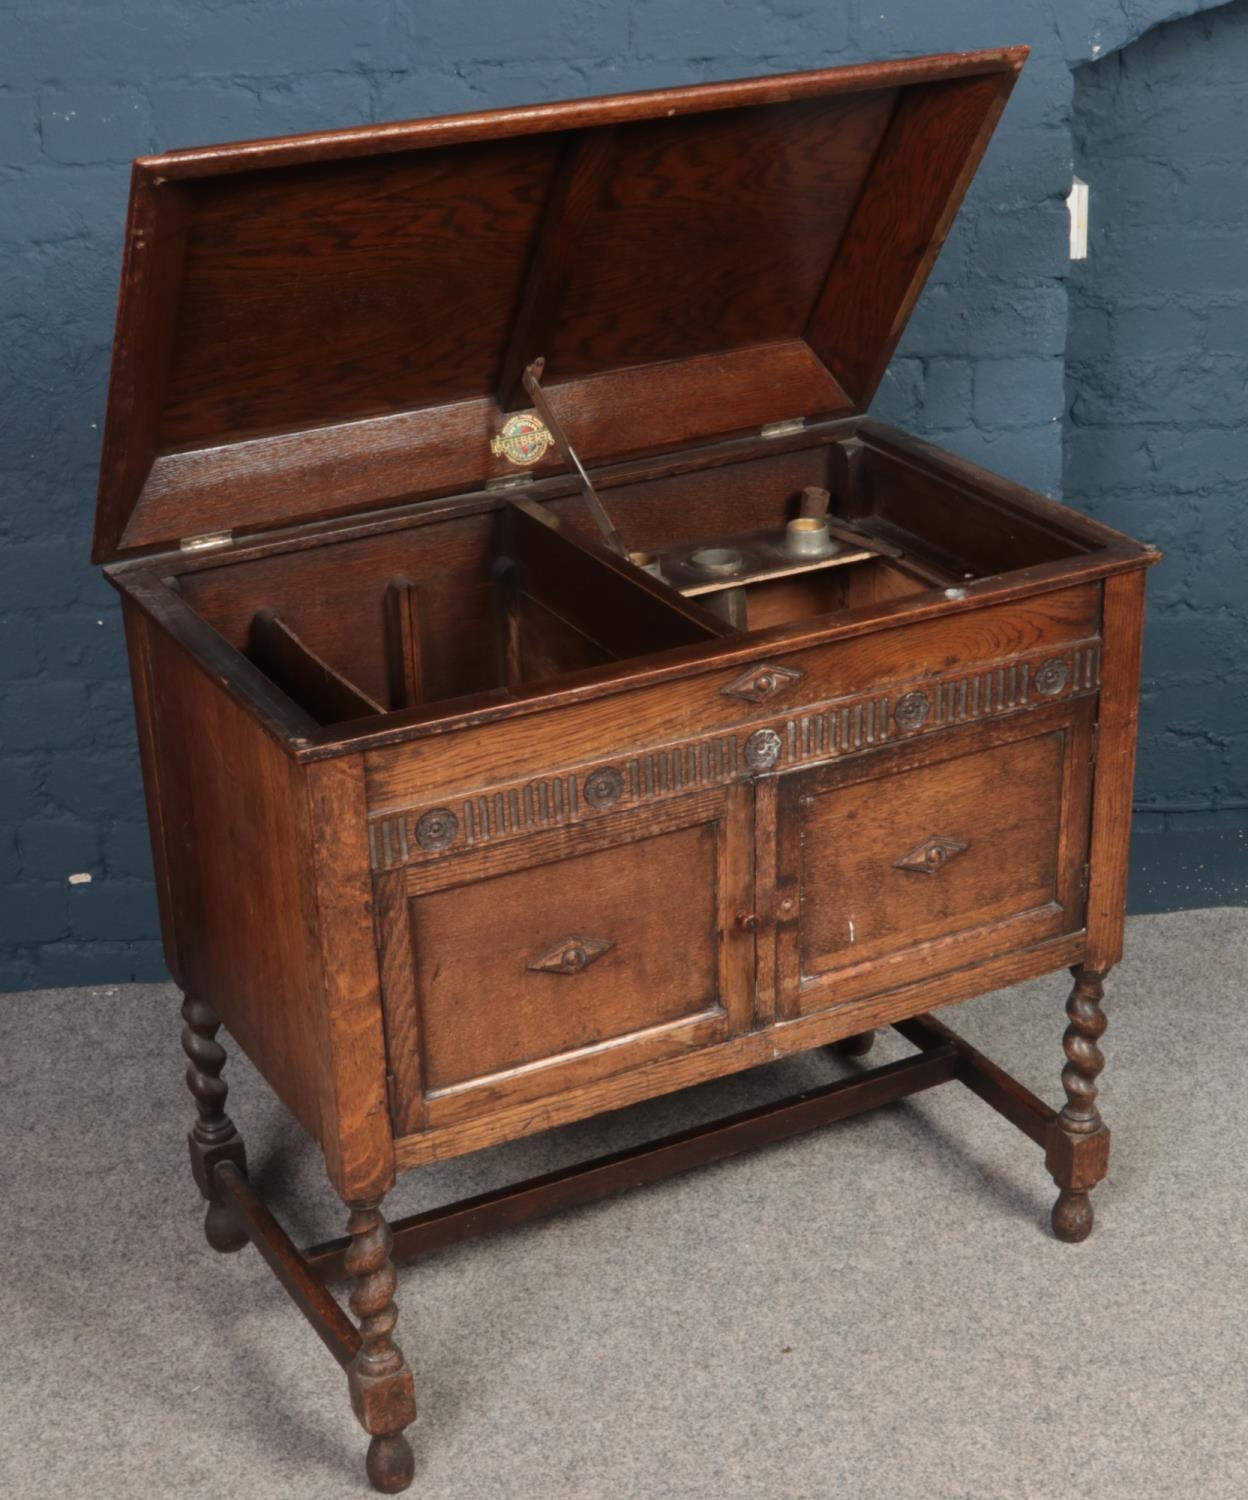 A carved and paneled oak Gilbert gramophone cabinet on barley twist supports.